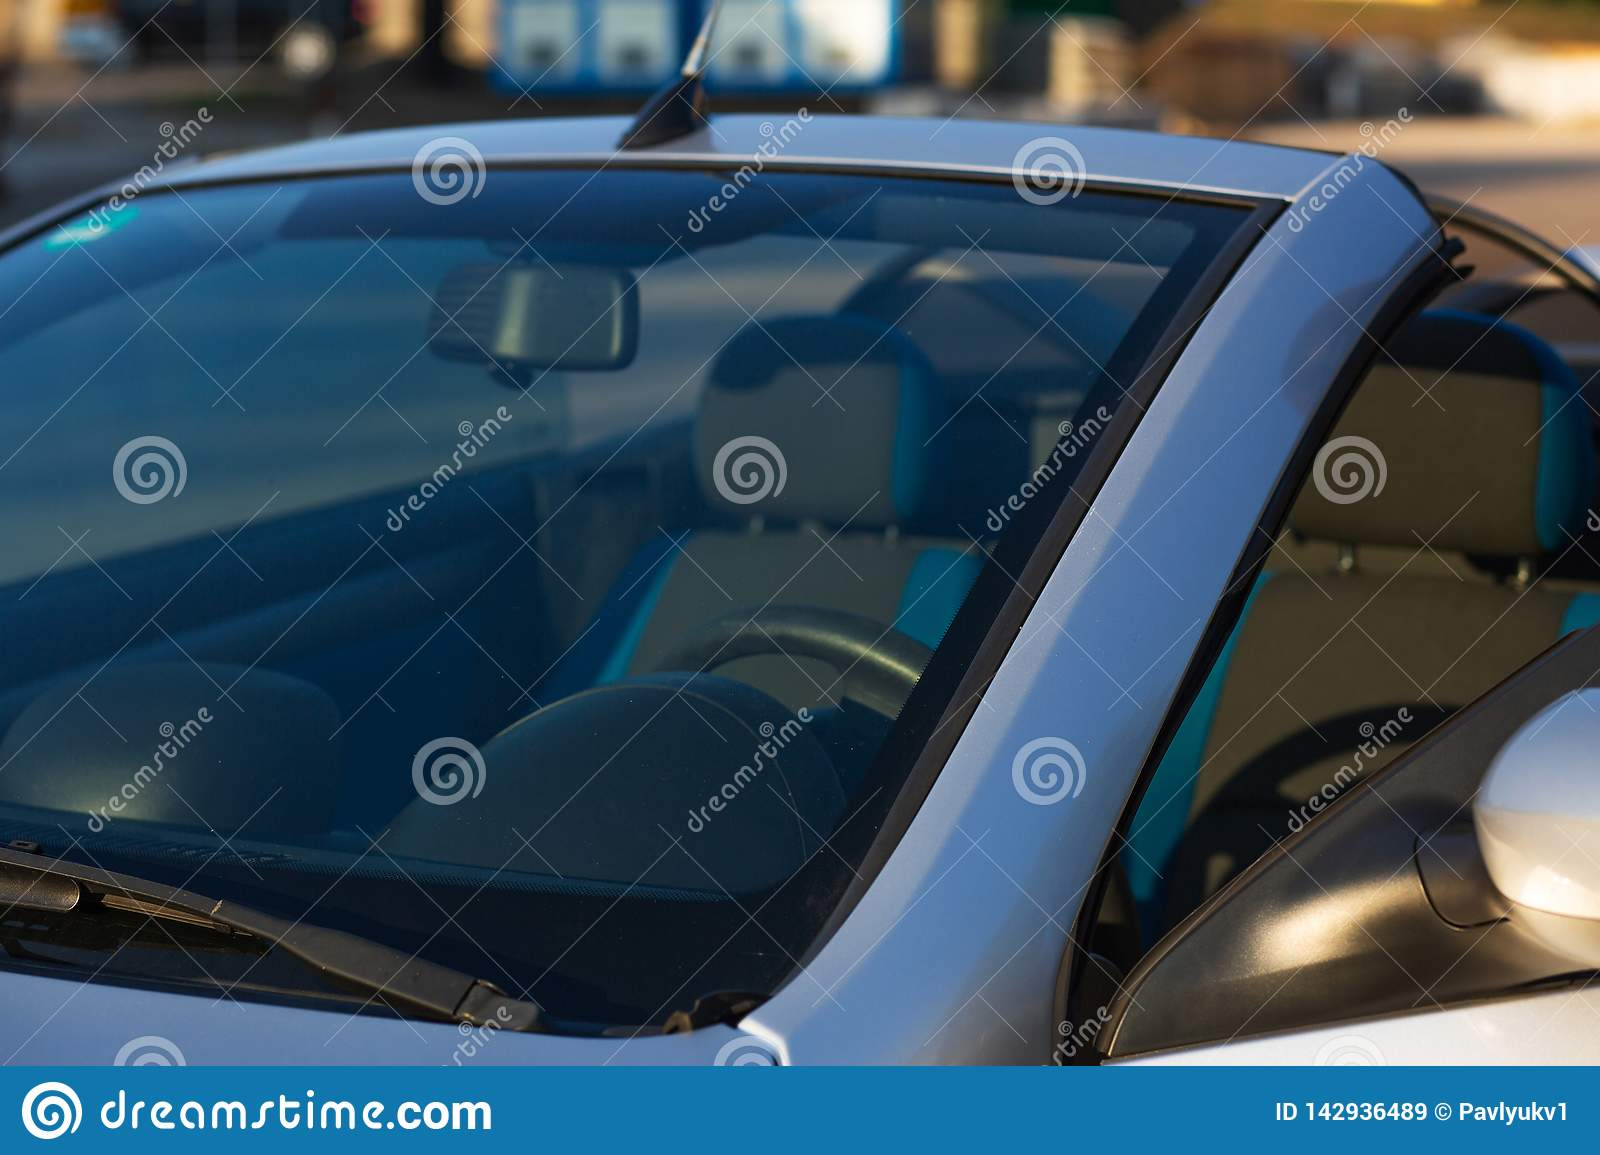 Blue Convertible Car Parked On The Street With Sun Light Stock Image Image Of Vehicle Auto 142936489